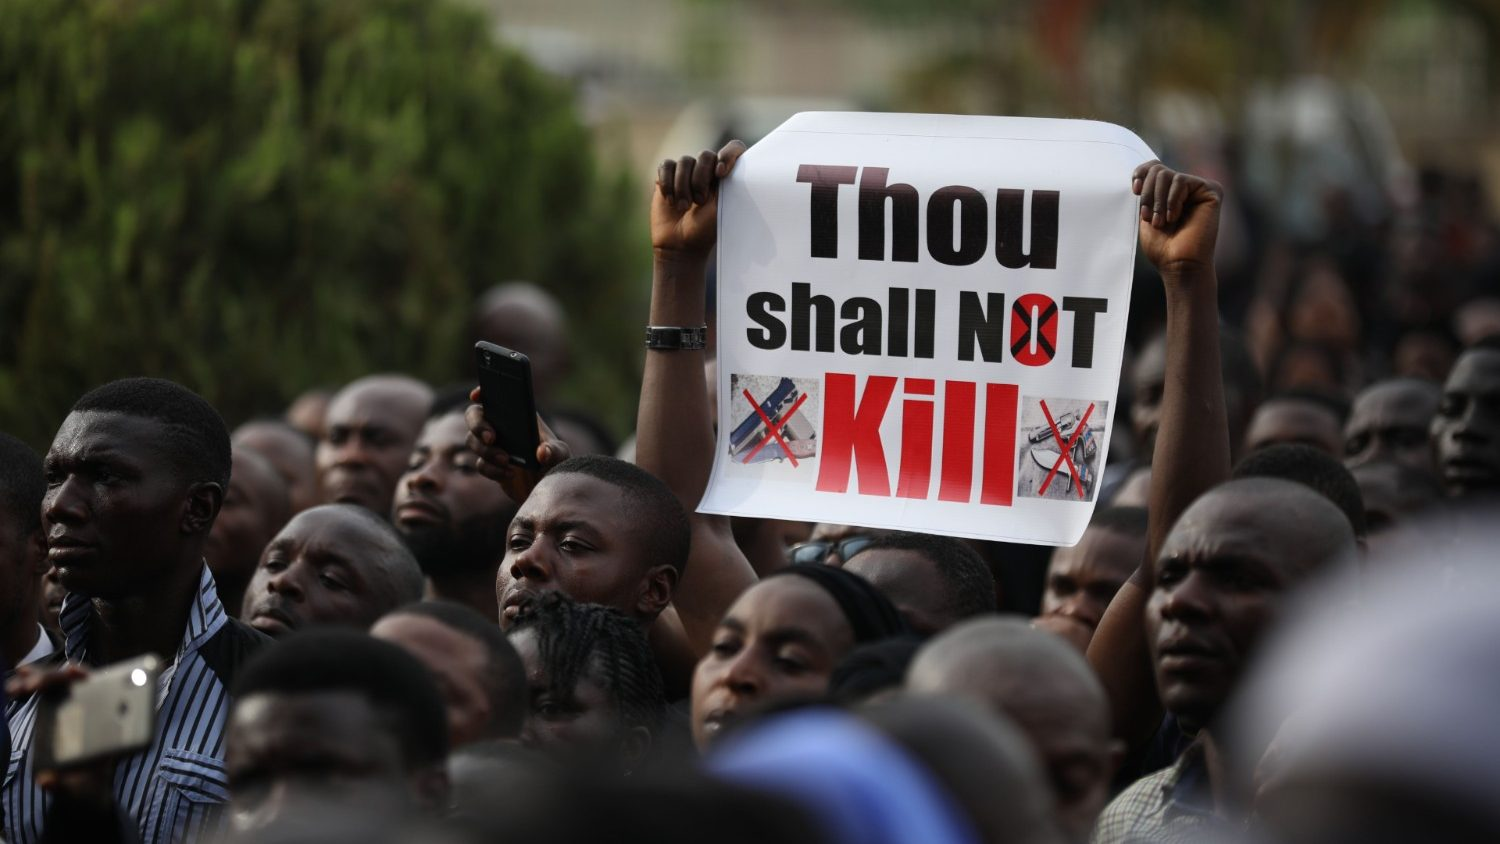 13 Christians killed every day in the world because of their faith